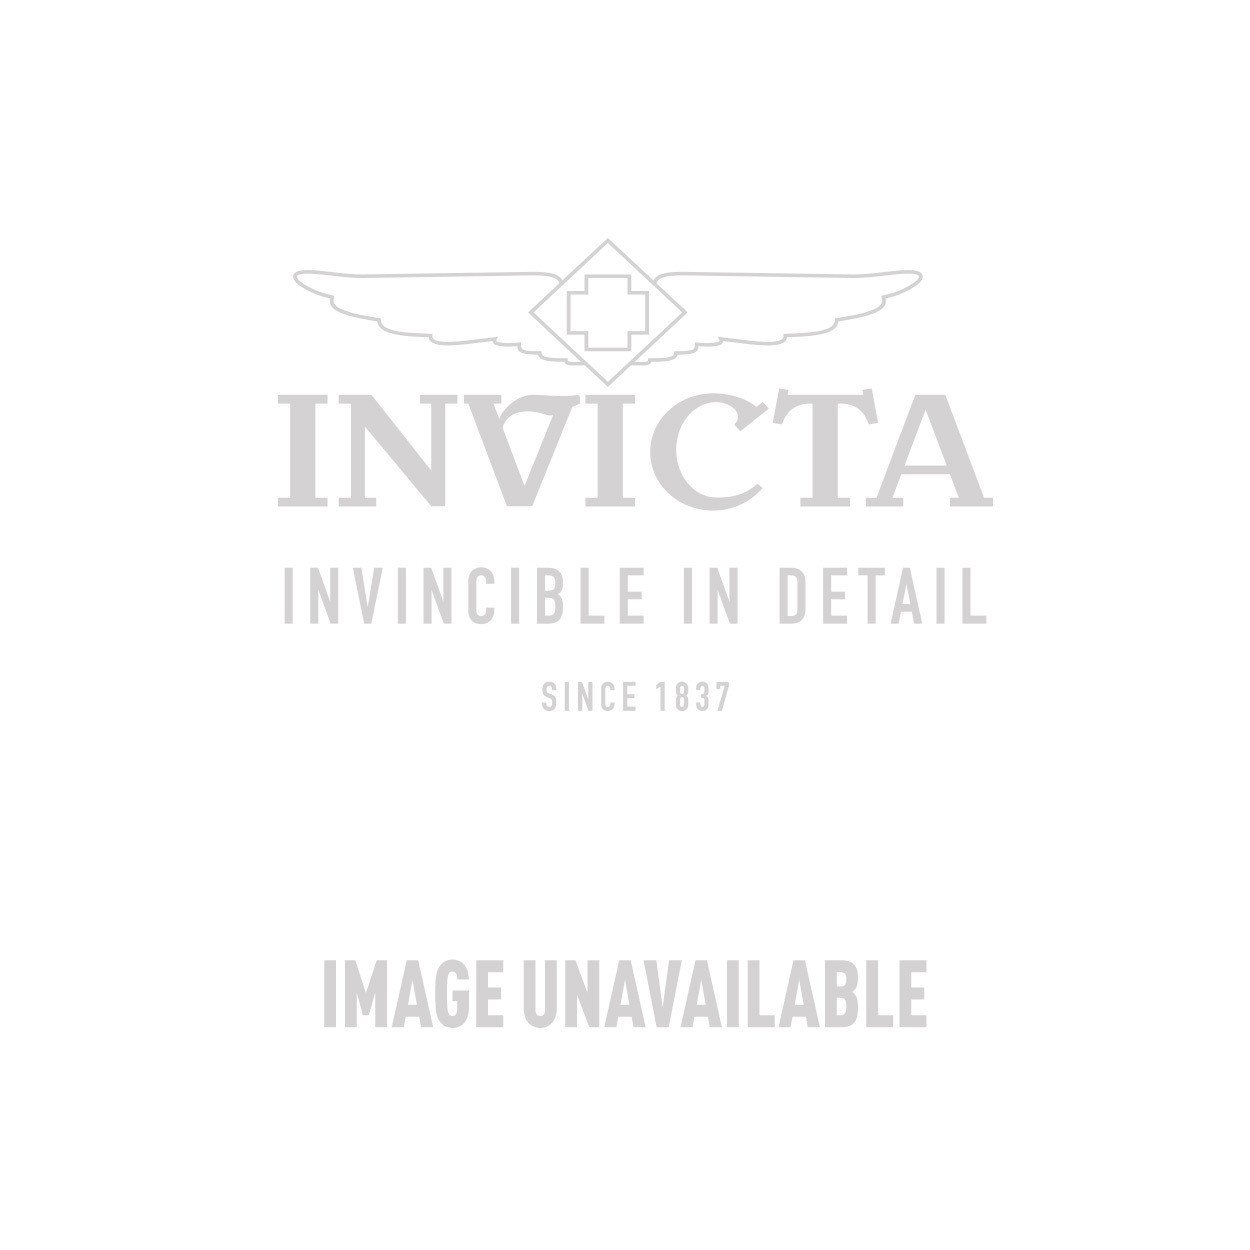 Invicta Aviator Quartz Watch - Gunmetal, Stainless Steel case Stainless Steel band - Model 17204